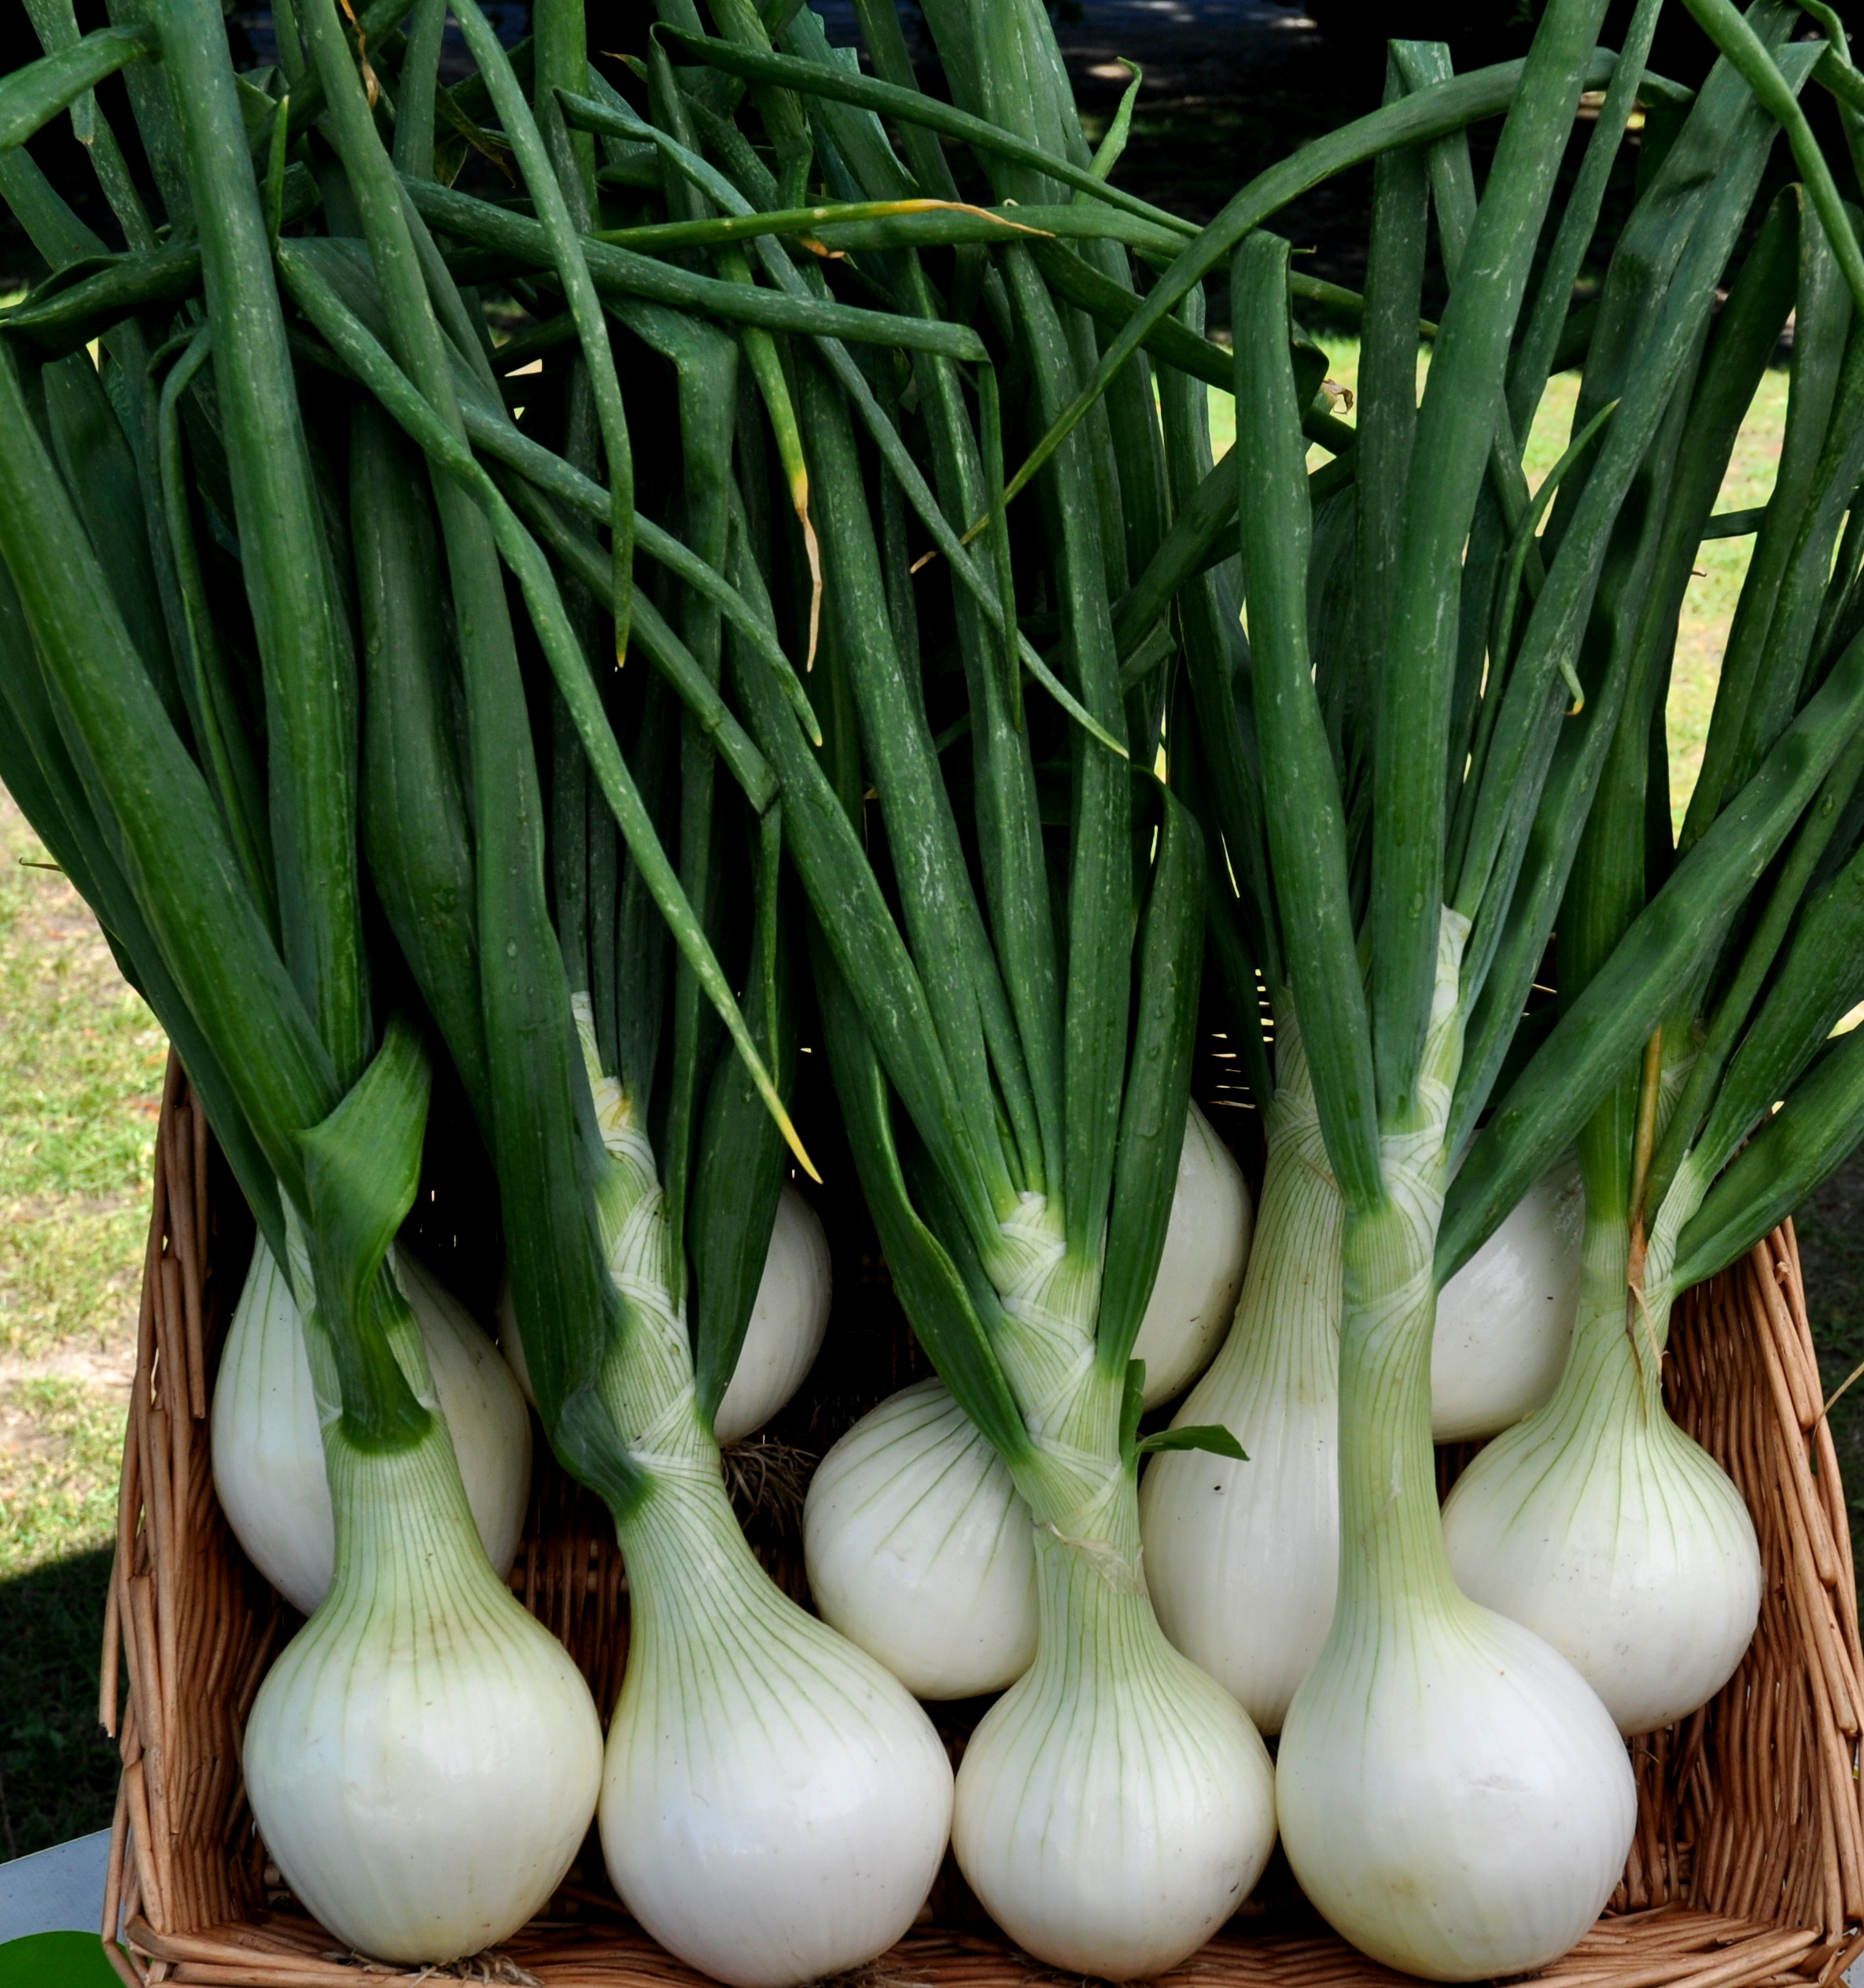 Sweet onion from Seattle Youth Garden Works. Photo copyright 2014 by Zachary D. Lyons.